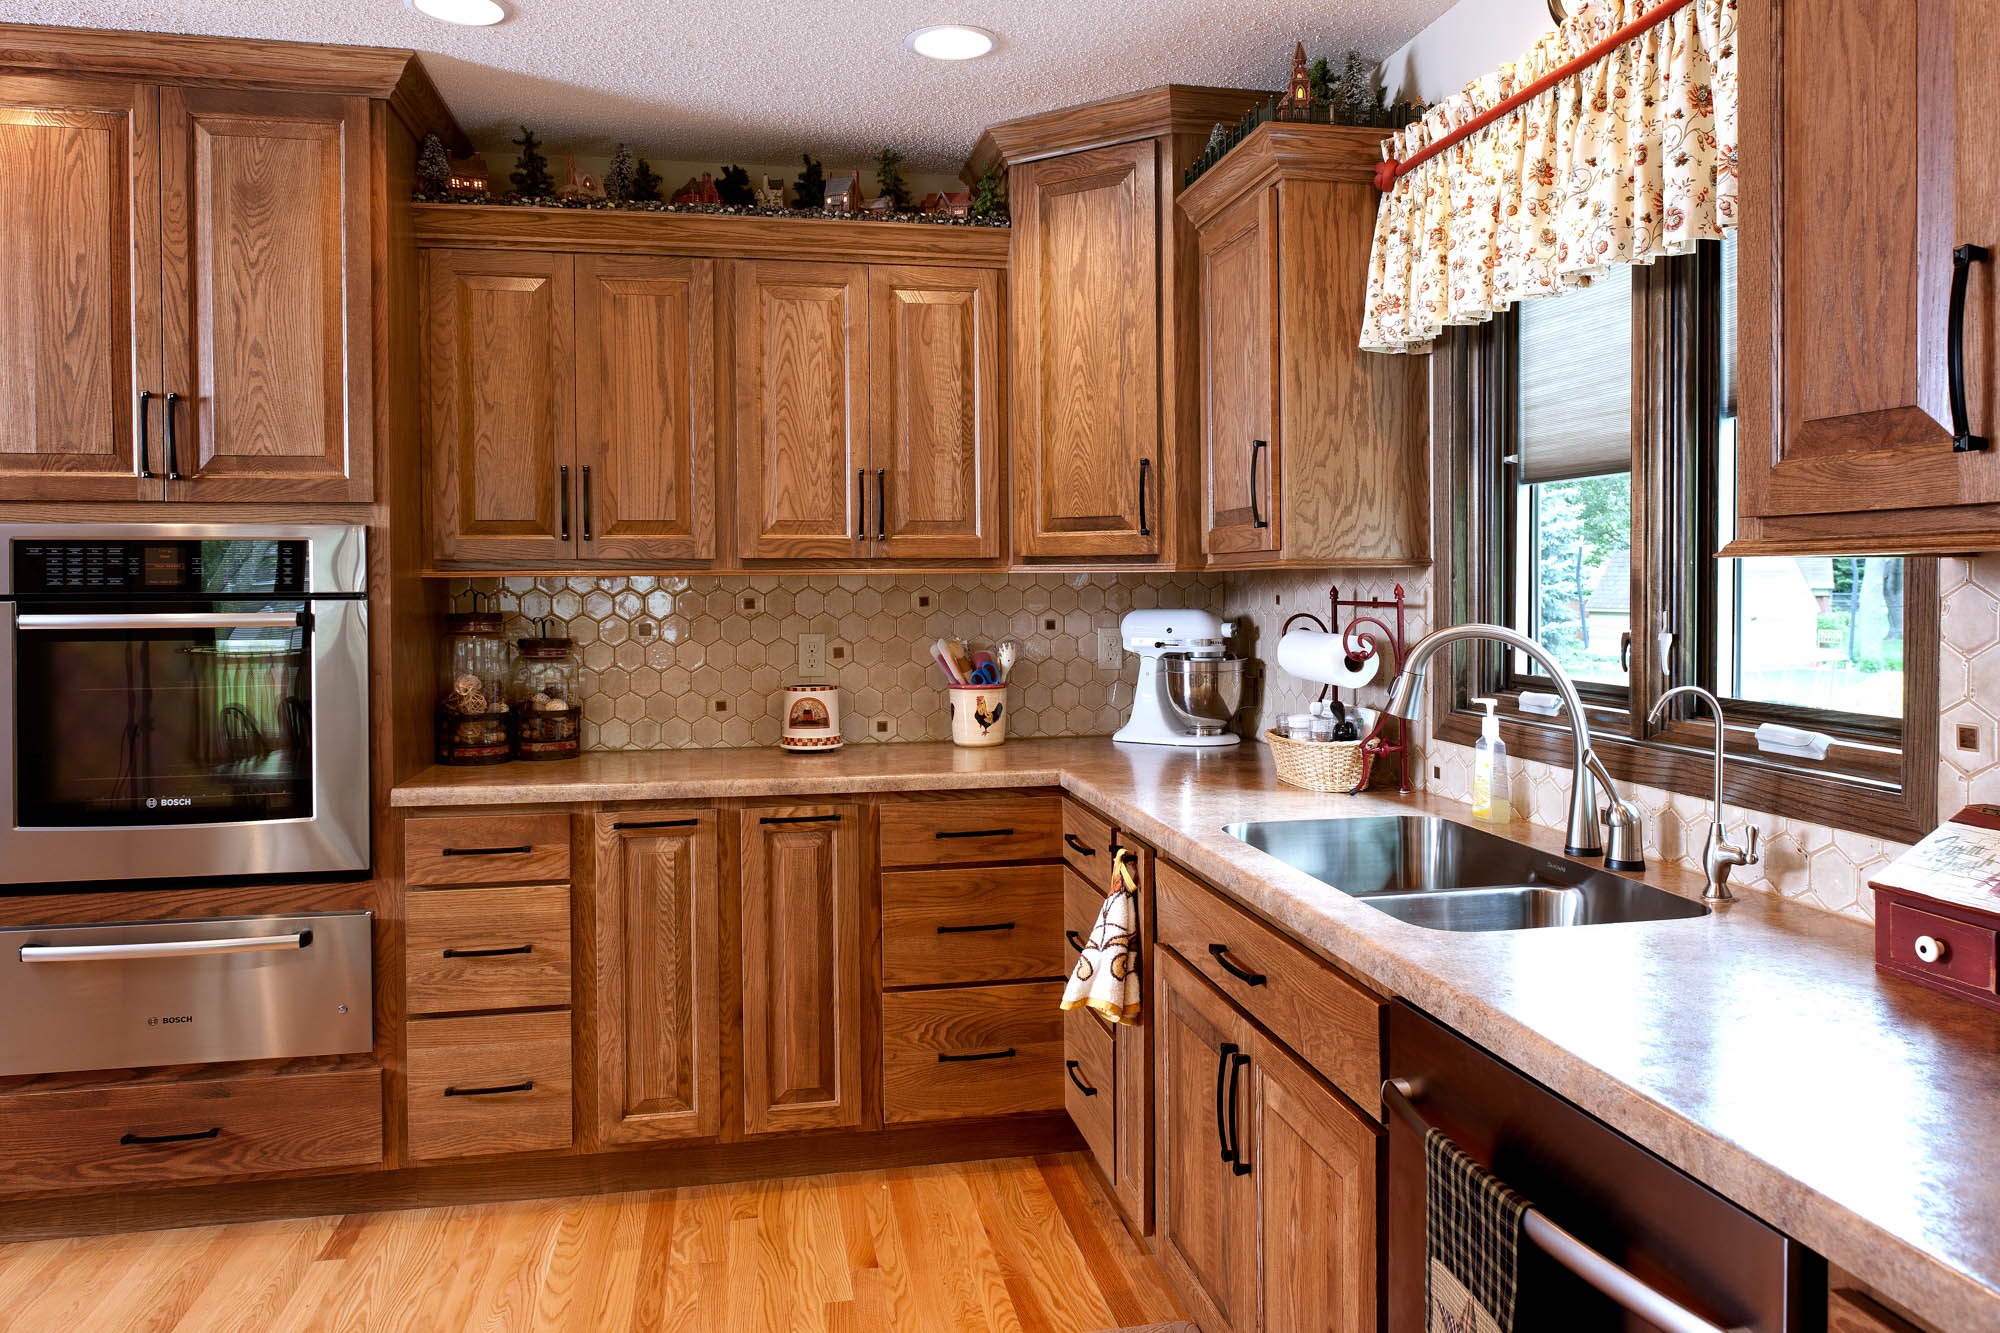 Stained Kitchen Cabinets In Cognac By Showplace Kitchens   View 3